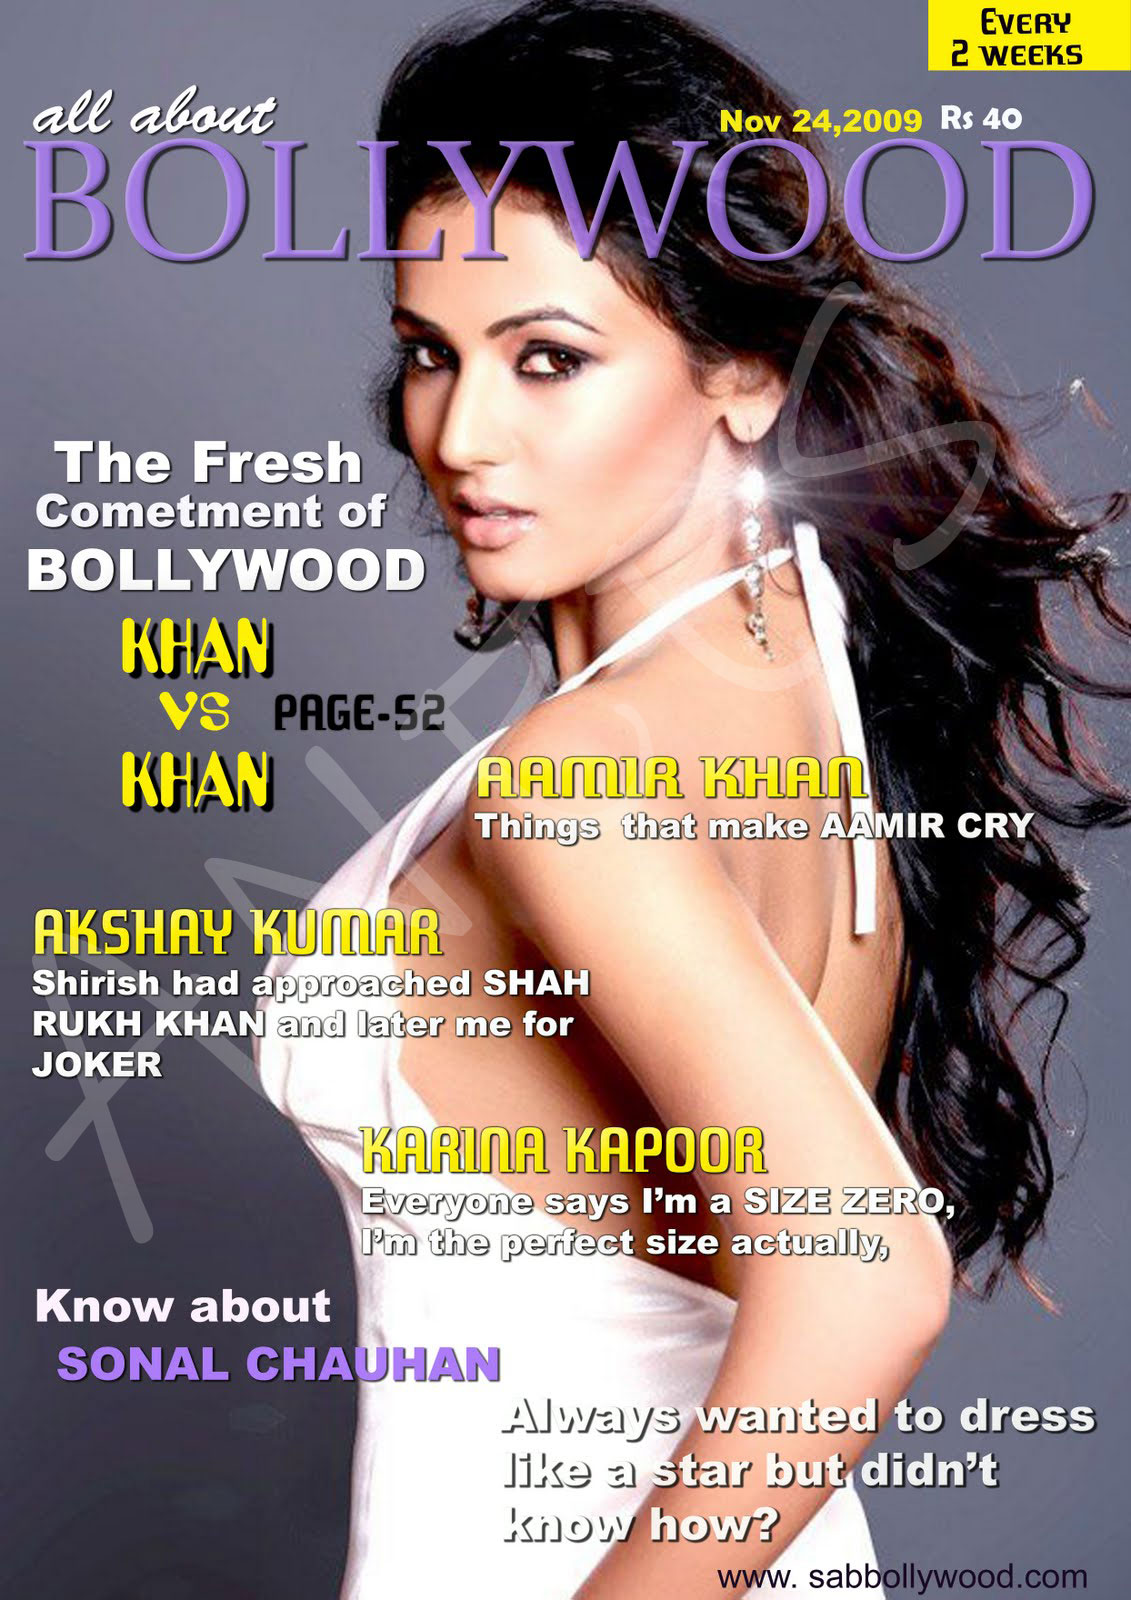 Bollywood Magazines Cover